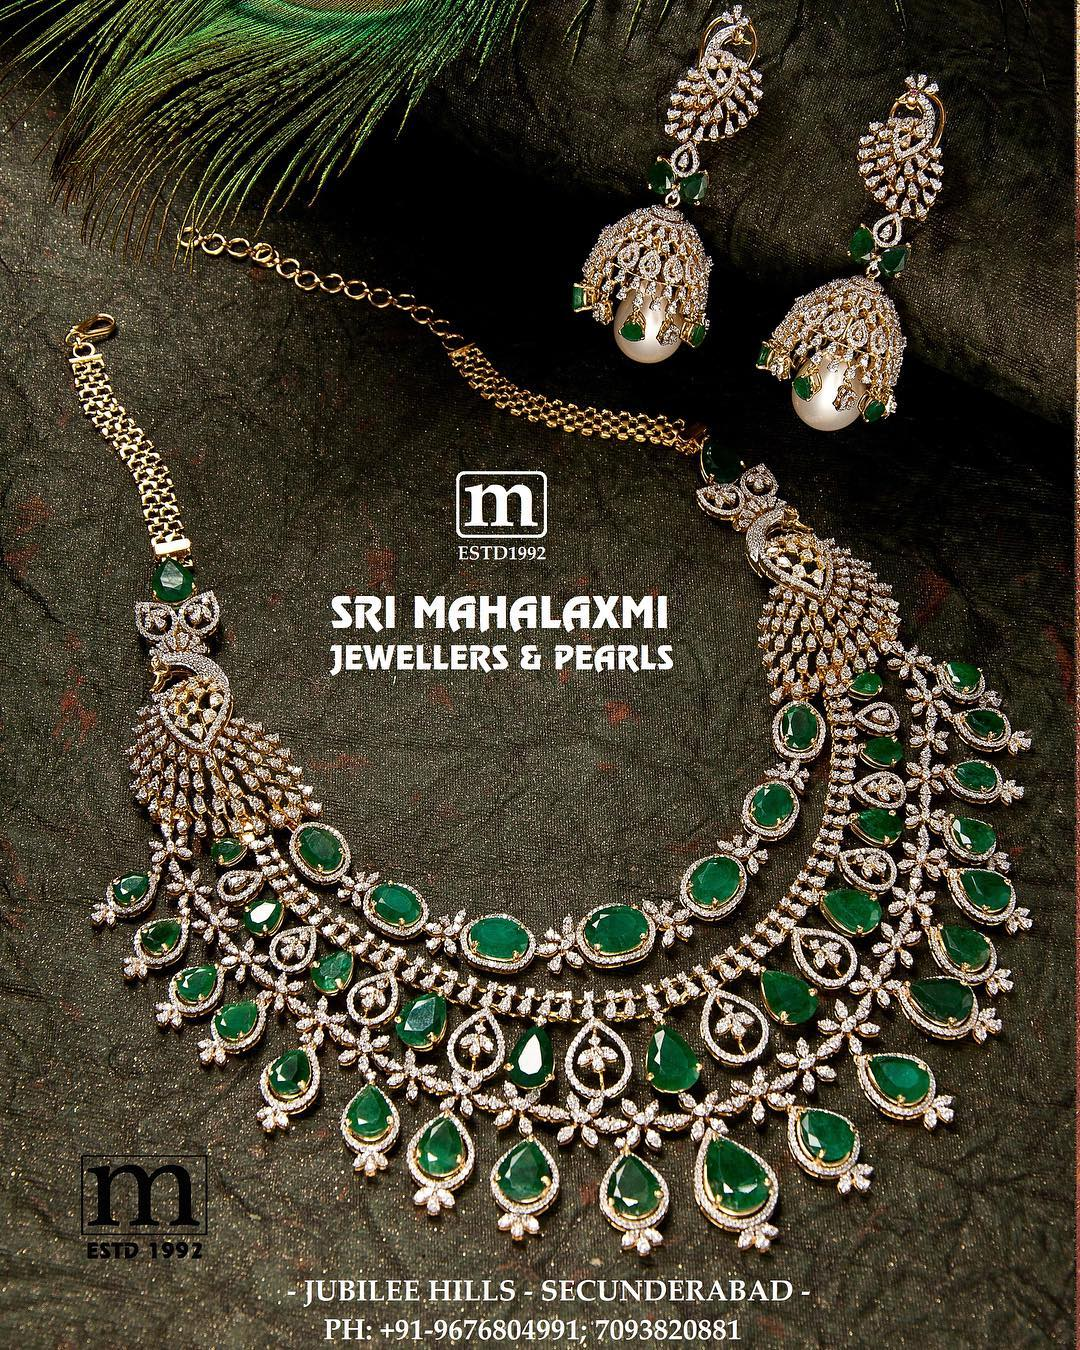 south-indian-diamond-jewellery-designs-2019 (5)